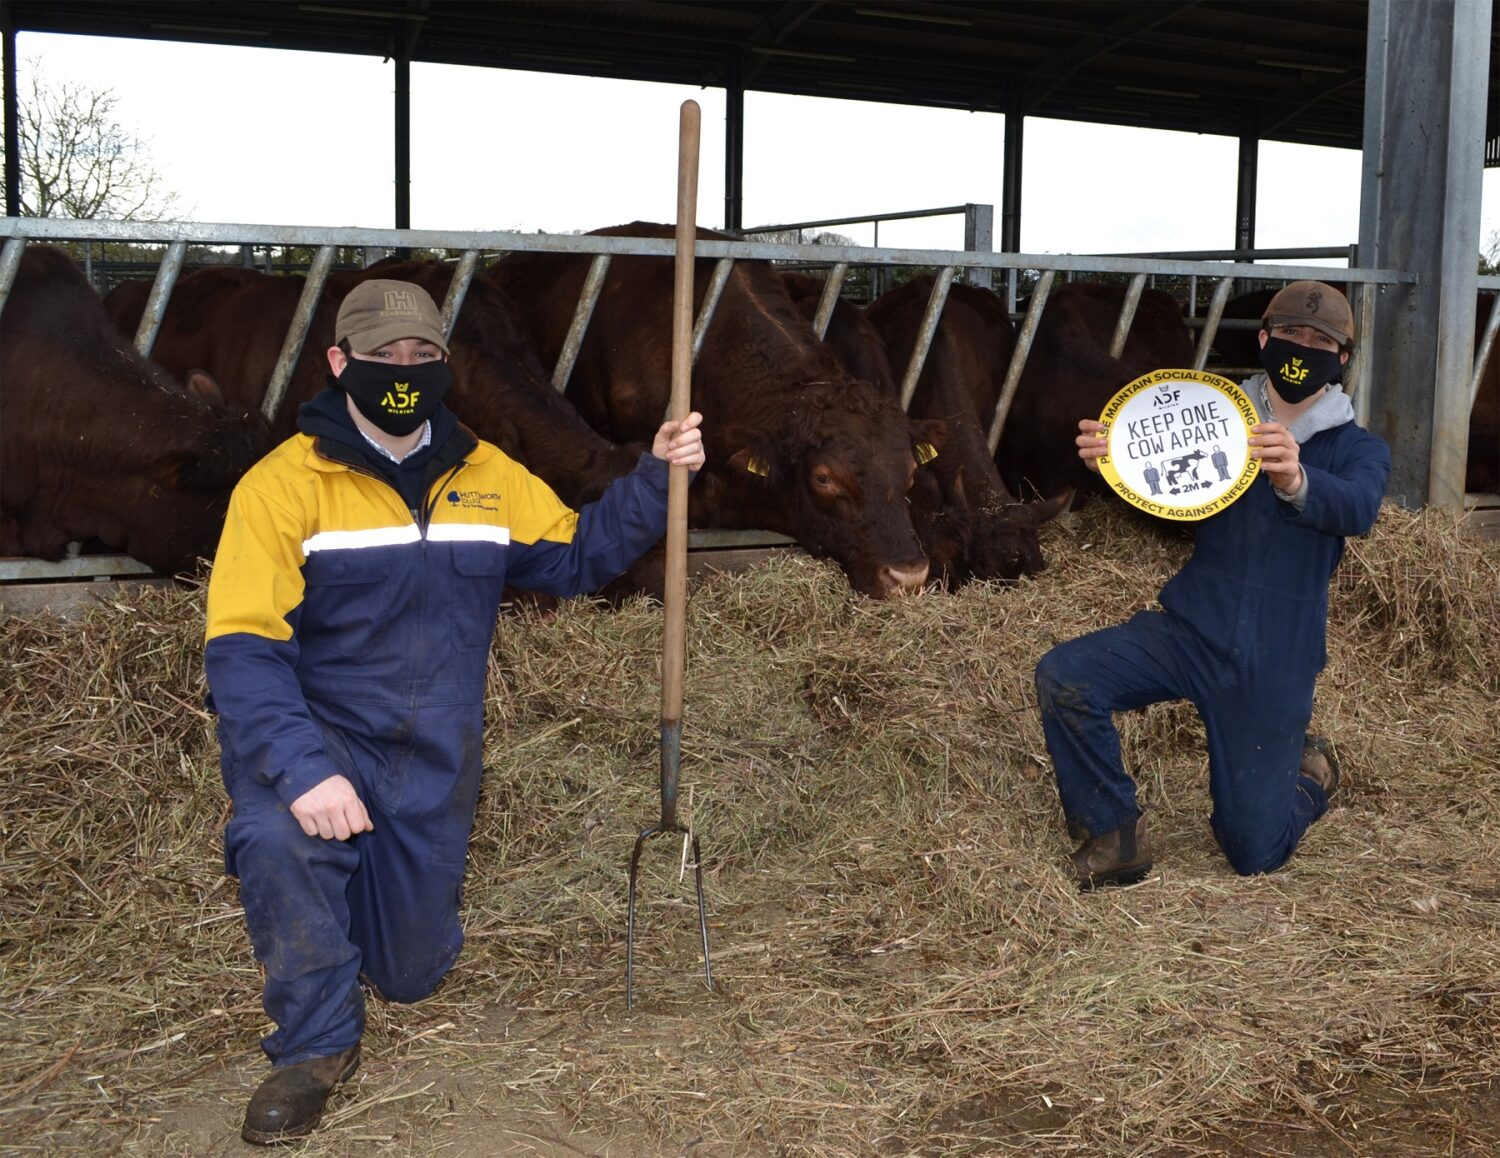 Shuttleworth College Agriculture students with Farm Safety messages